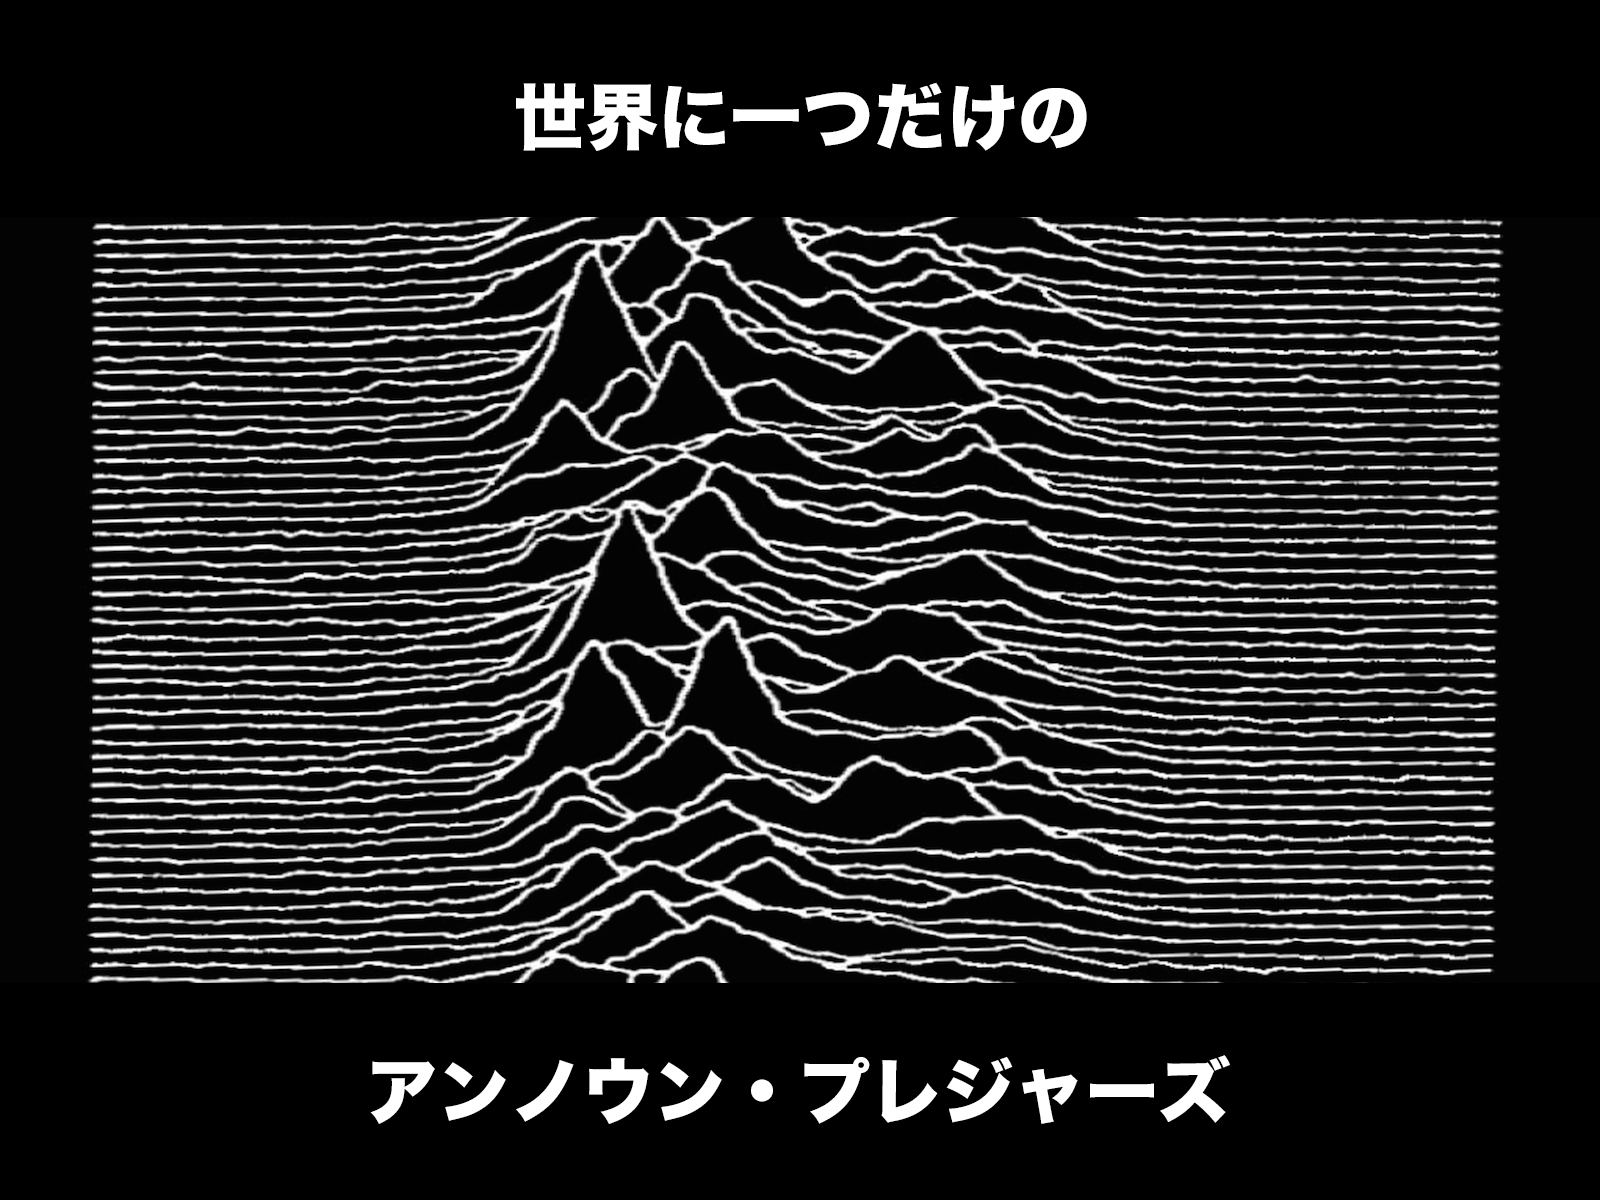 RE WORK : UNKNOWN PLEASURES